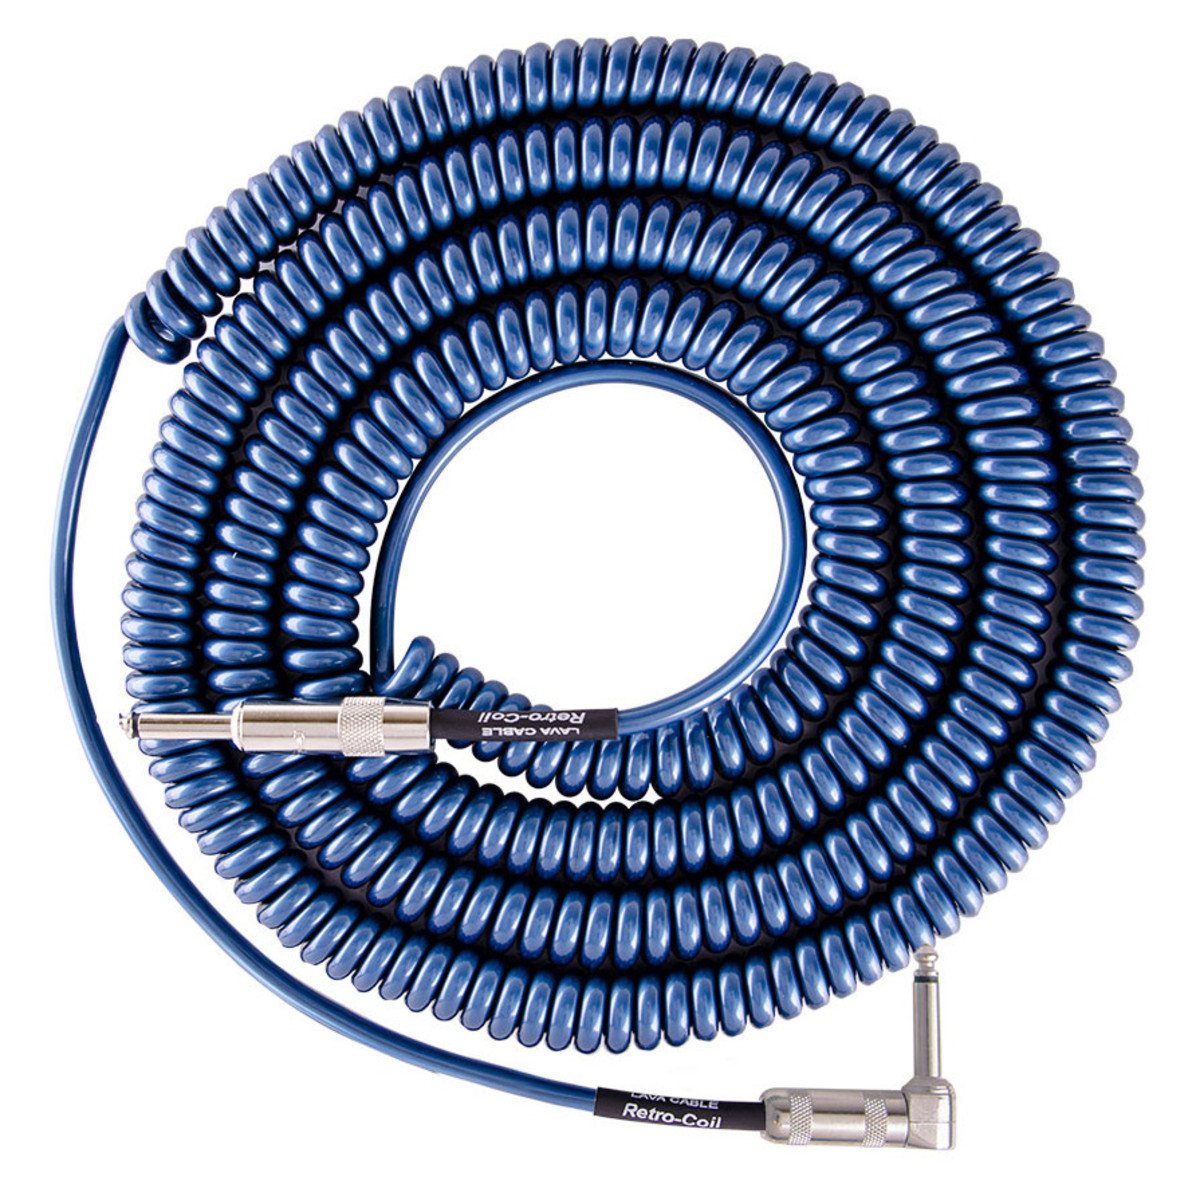 lava cable retro coil angled instrument cable 20ft metallic blue at gear4music. Black Bedroom Furniture Sets. Home Design Ideas